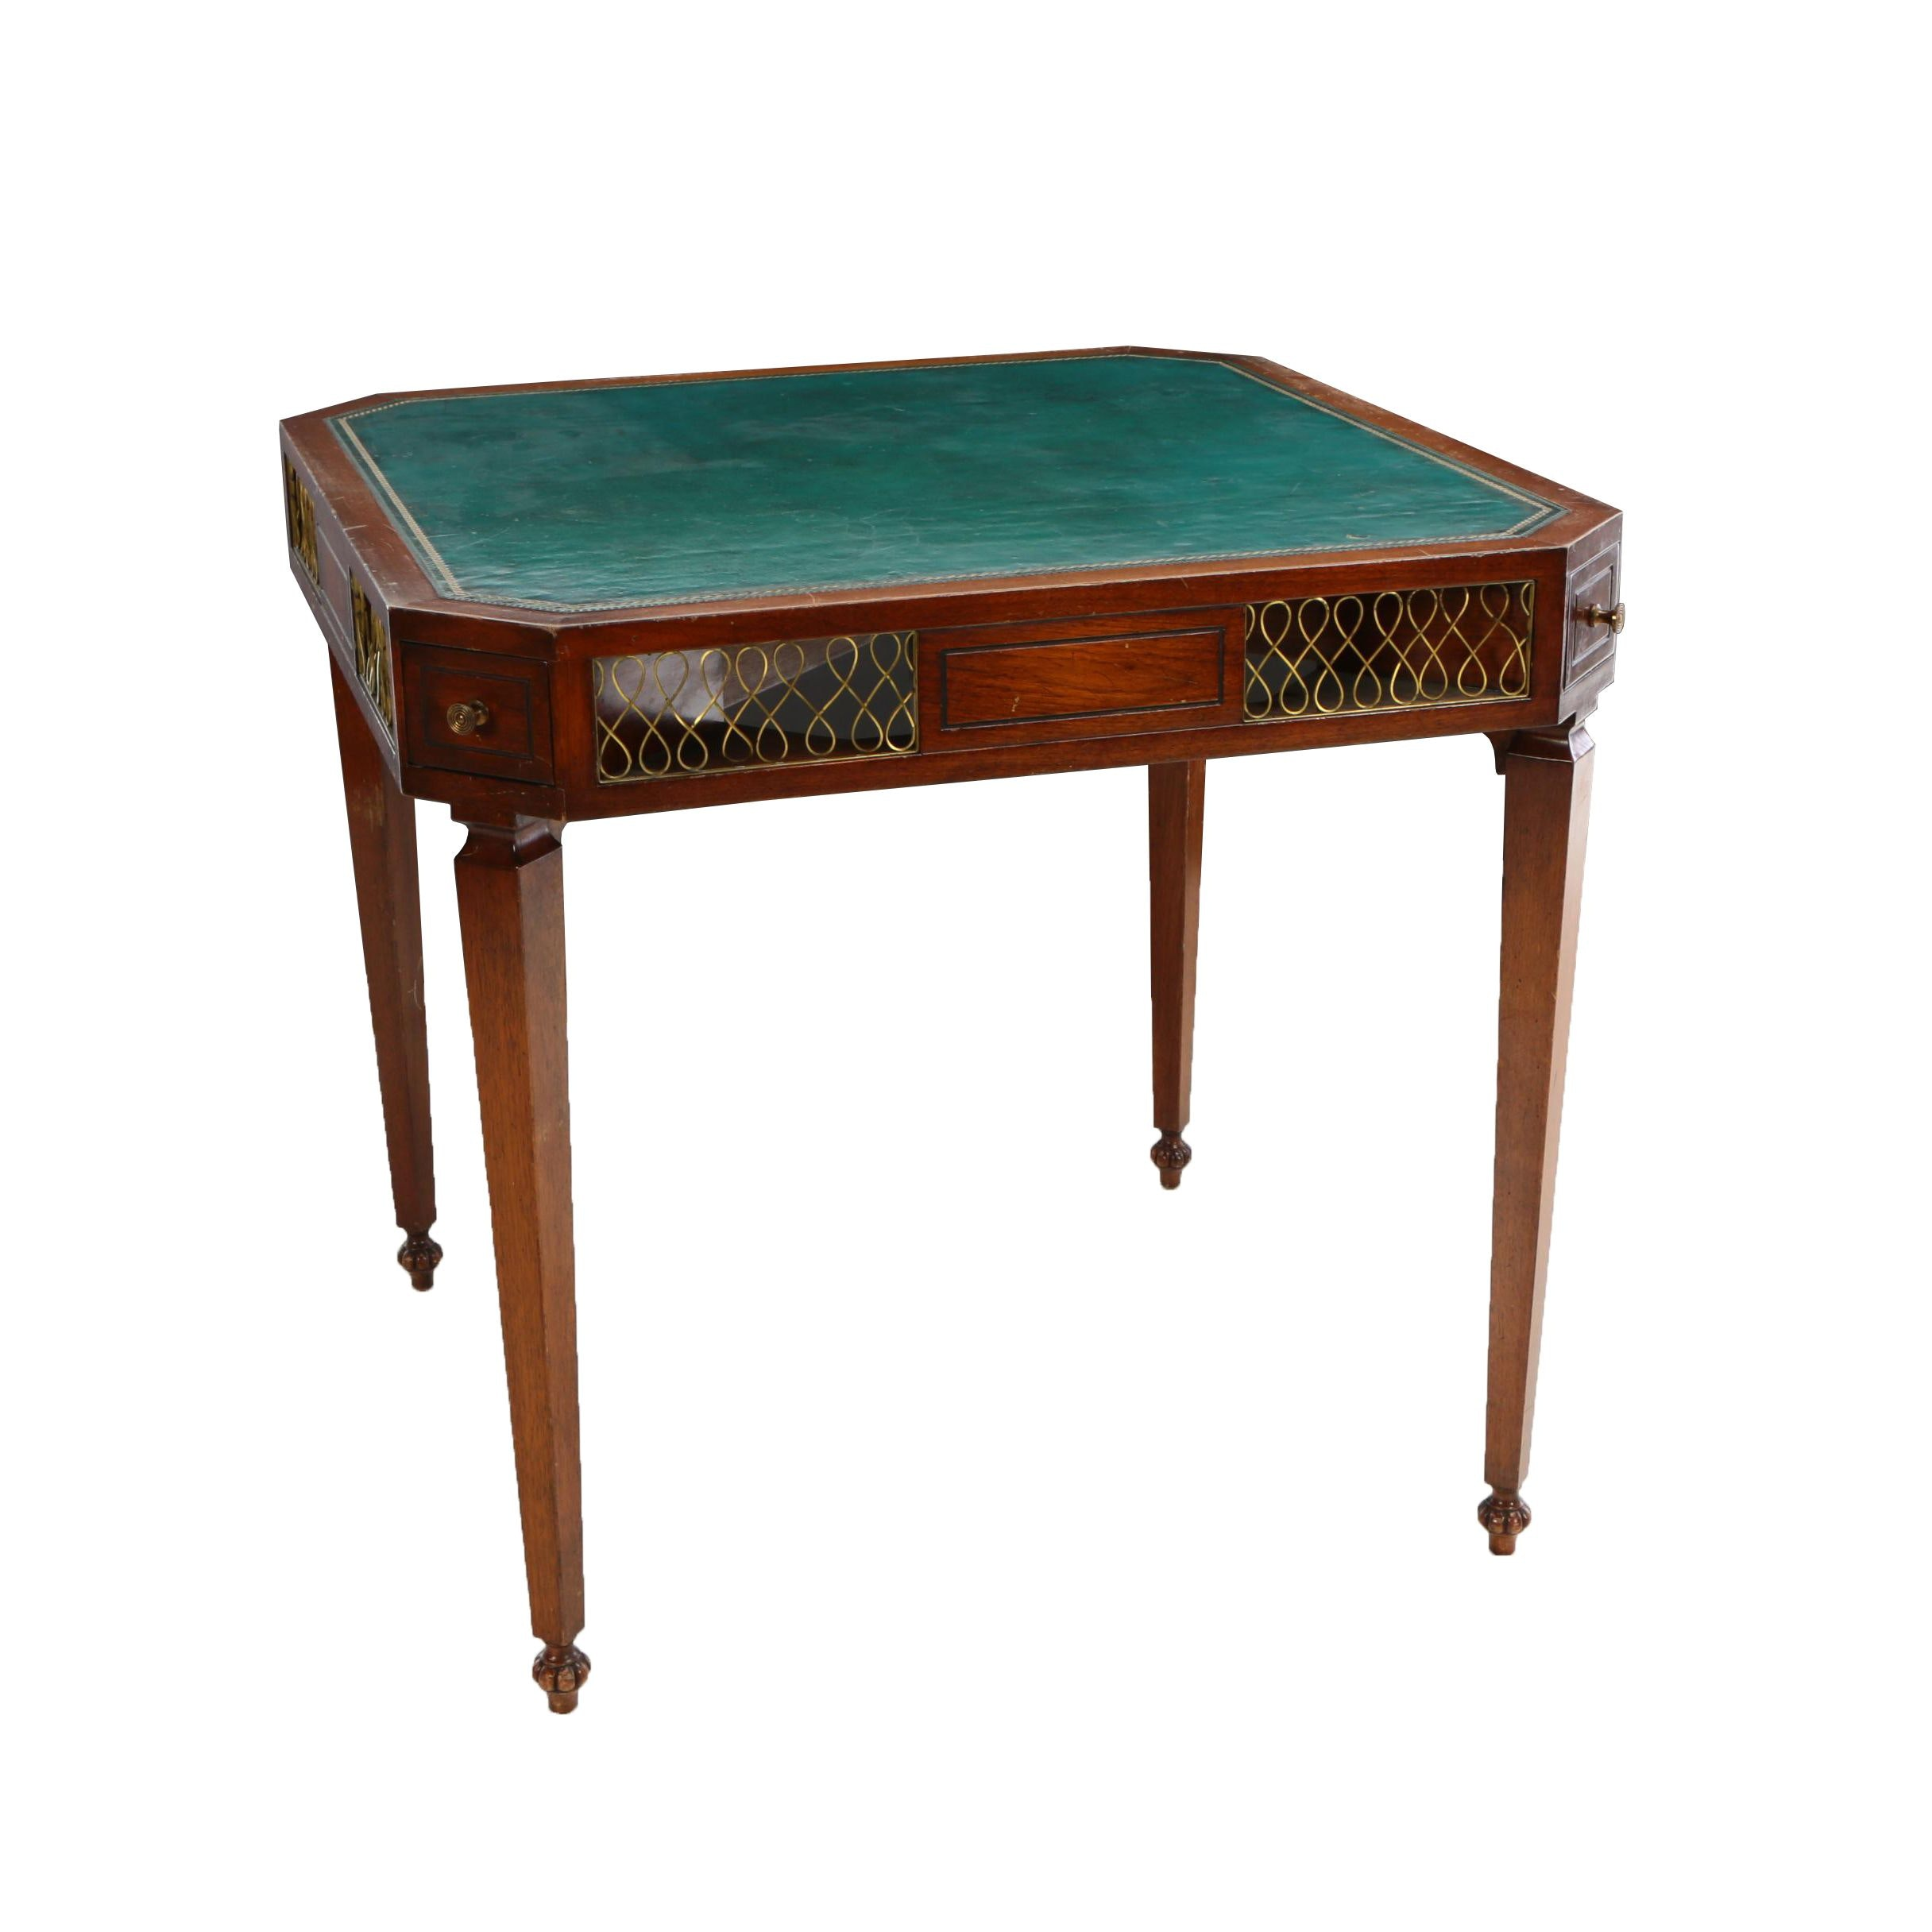 Regency Style Brass-Mounted Mahogany and Leather Games Table, 20th Century